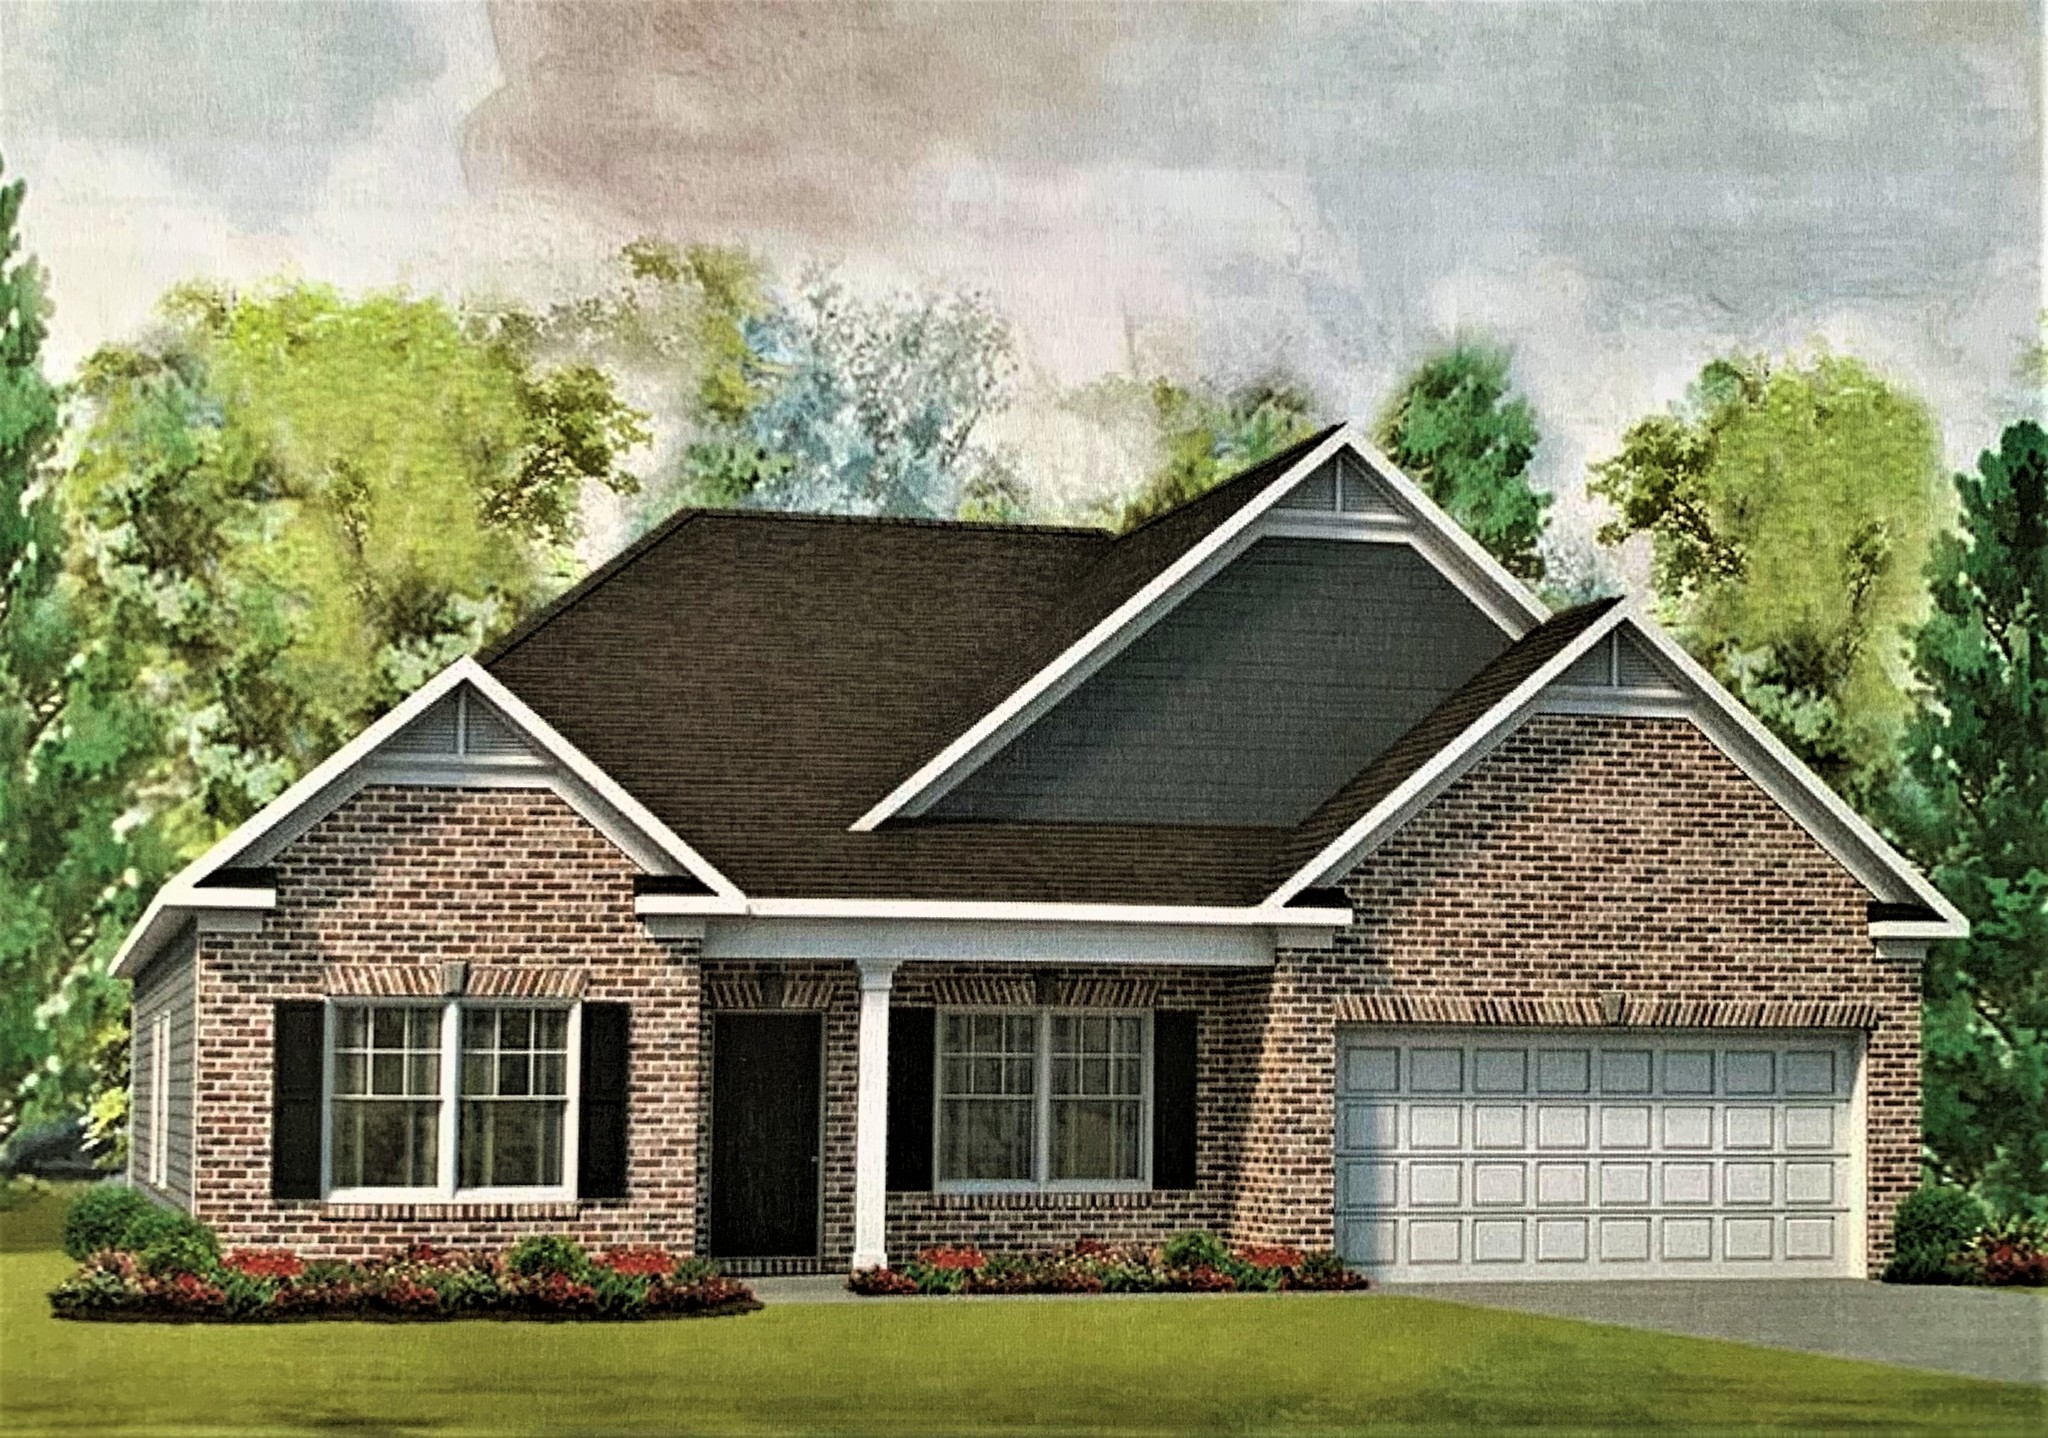 208 Rochester Drive Property Photo - Shelbyville, TN real estate listing